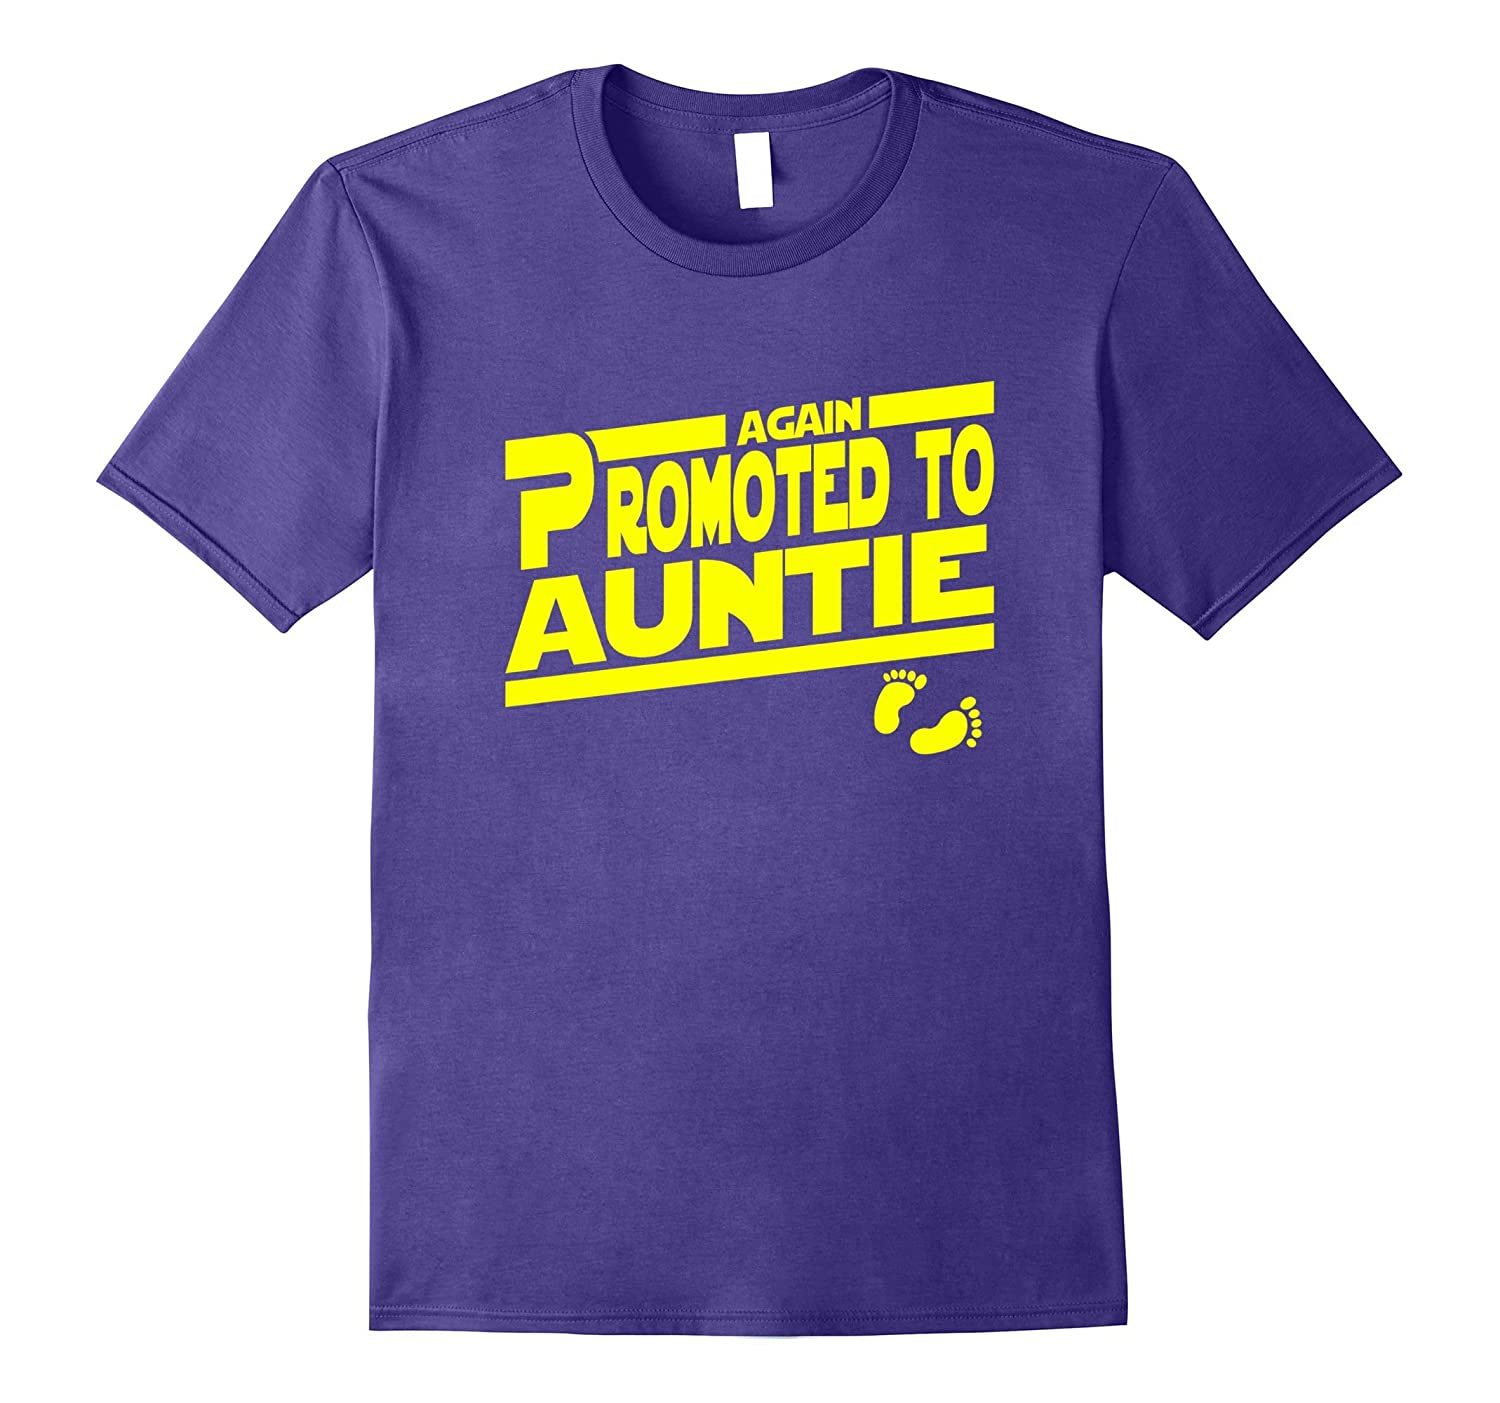 Promoted To Auntie Again Shirt Aunt-TJ